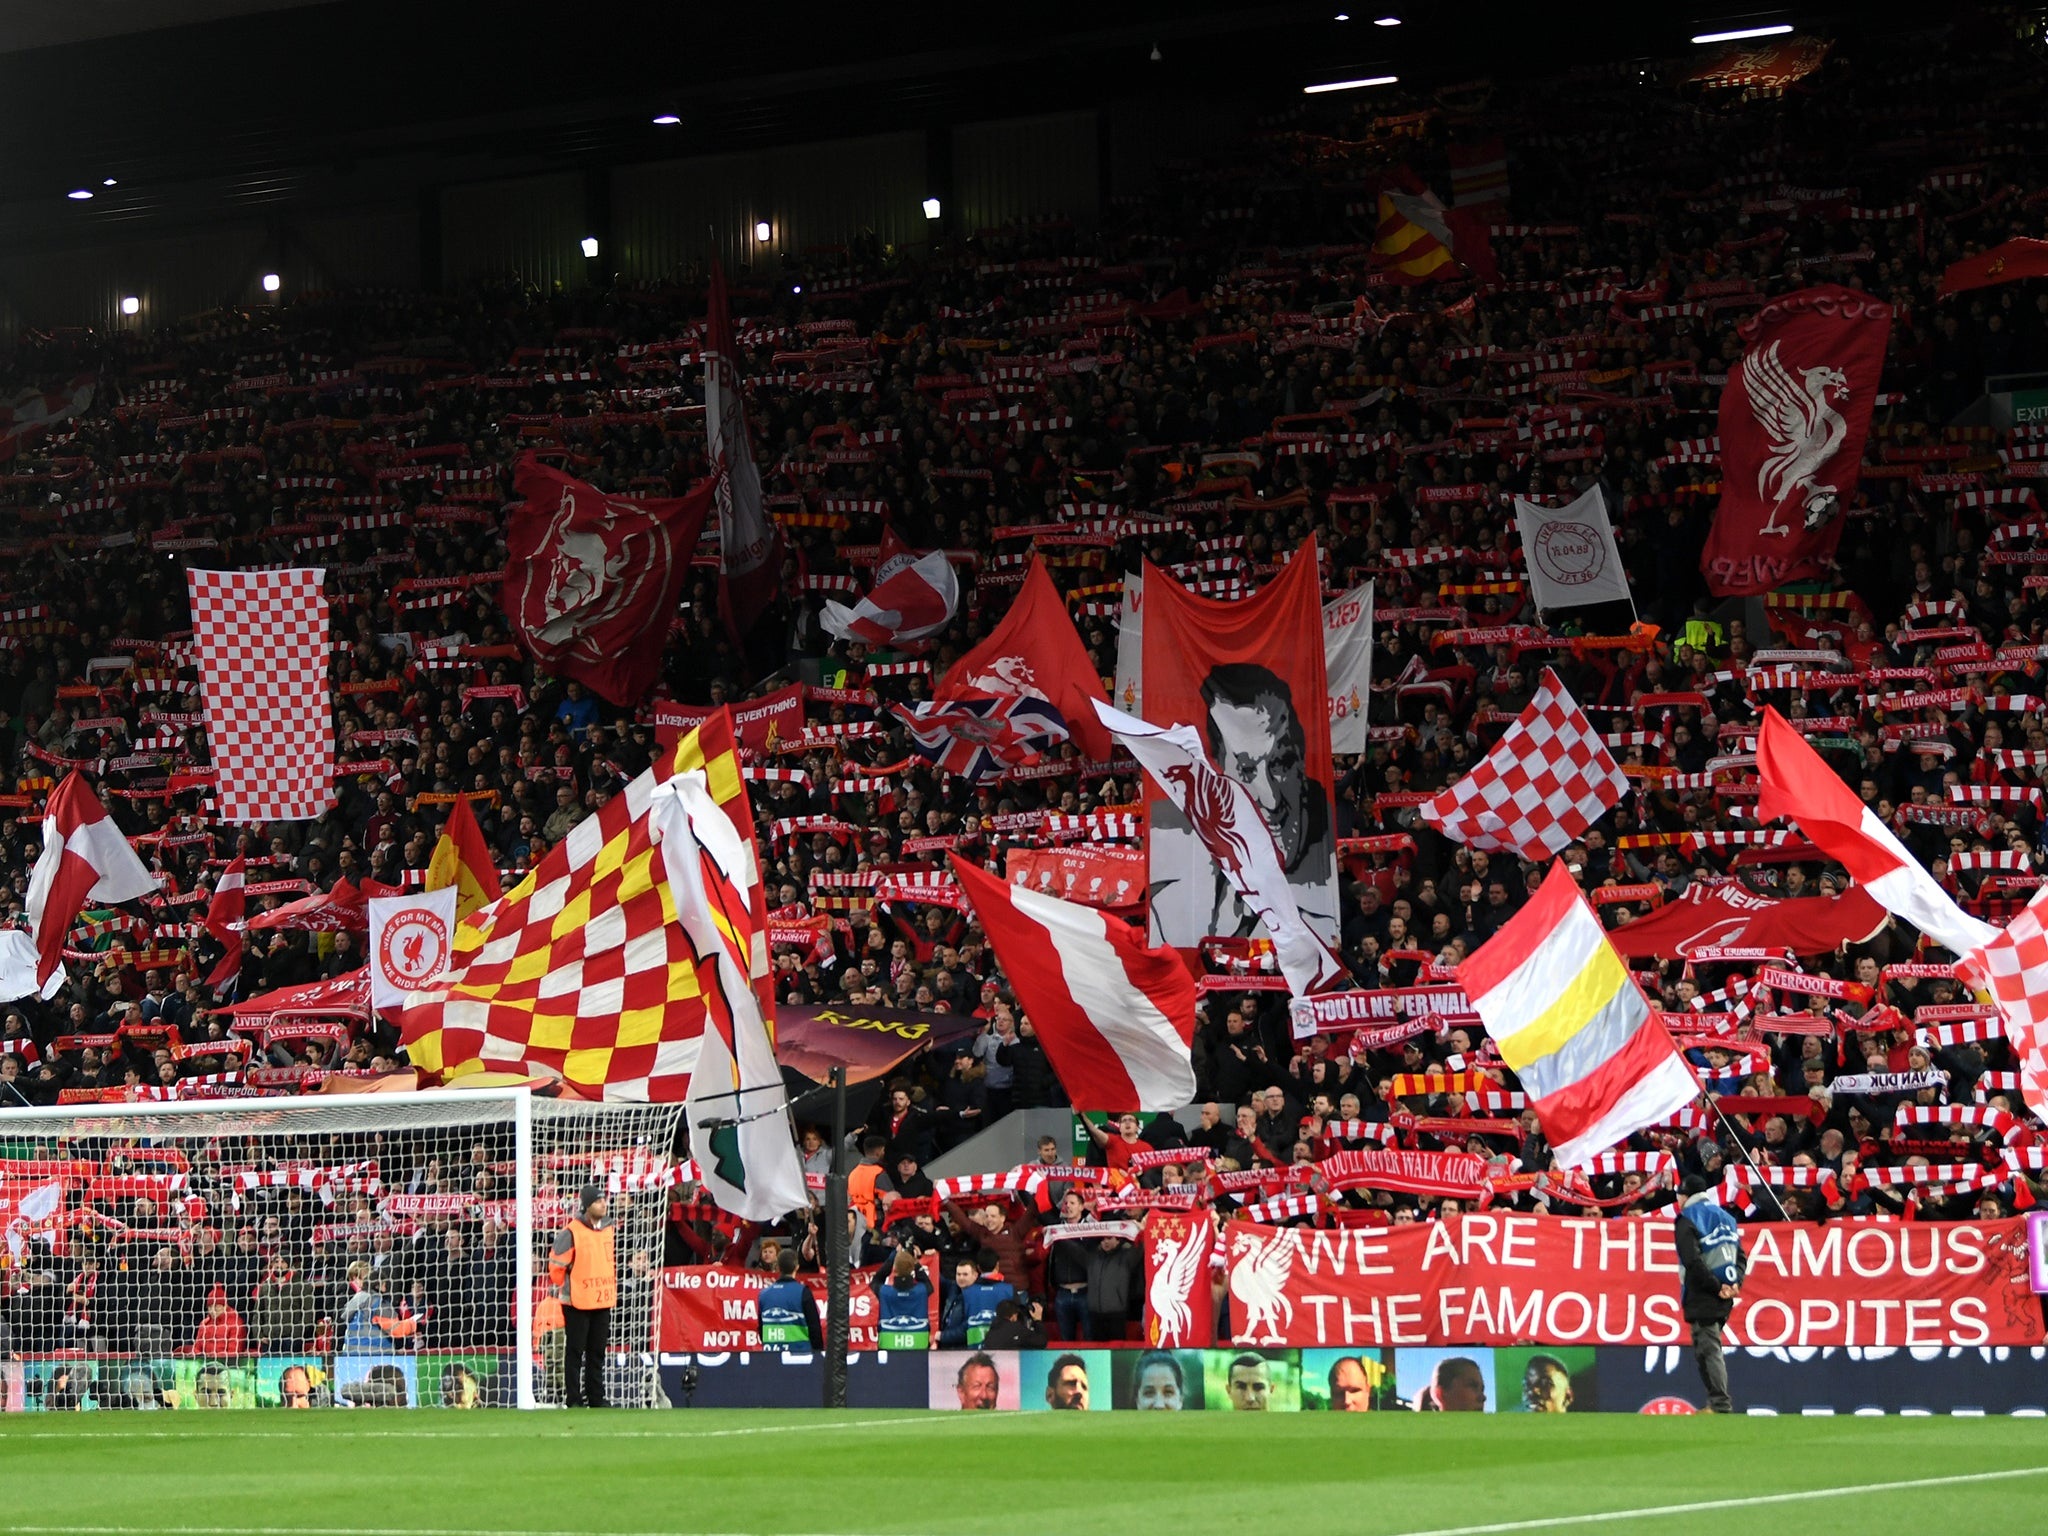 805cf5f3ecb Anfield feels impenetrable when Liverpool play this way. Try not imagine  what an alternative world would be like